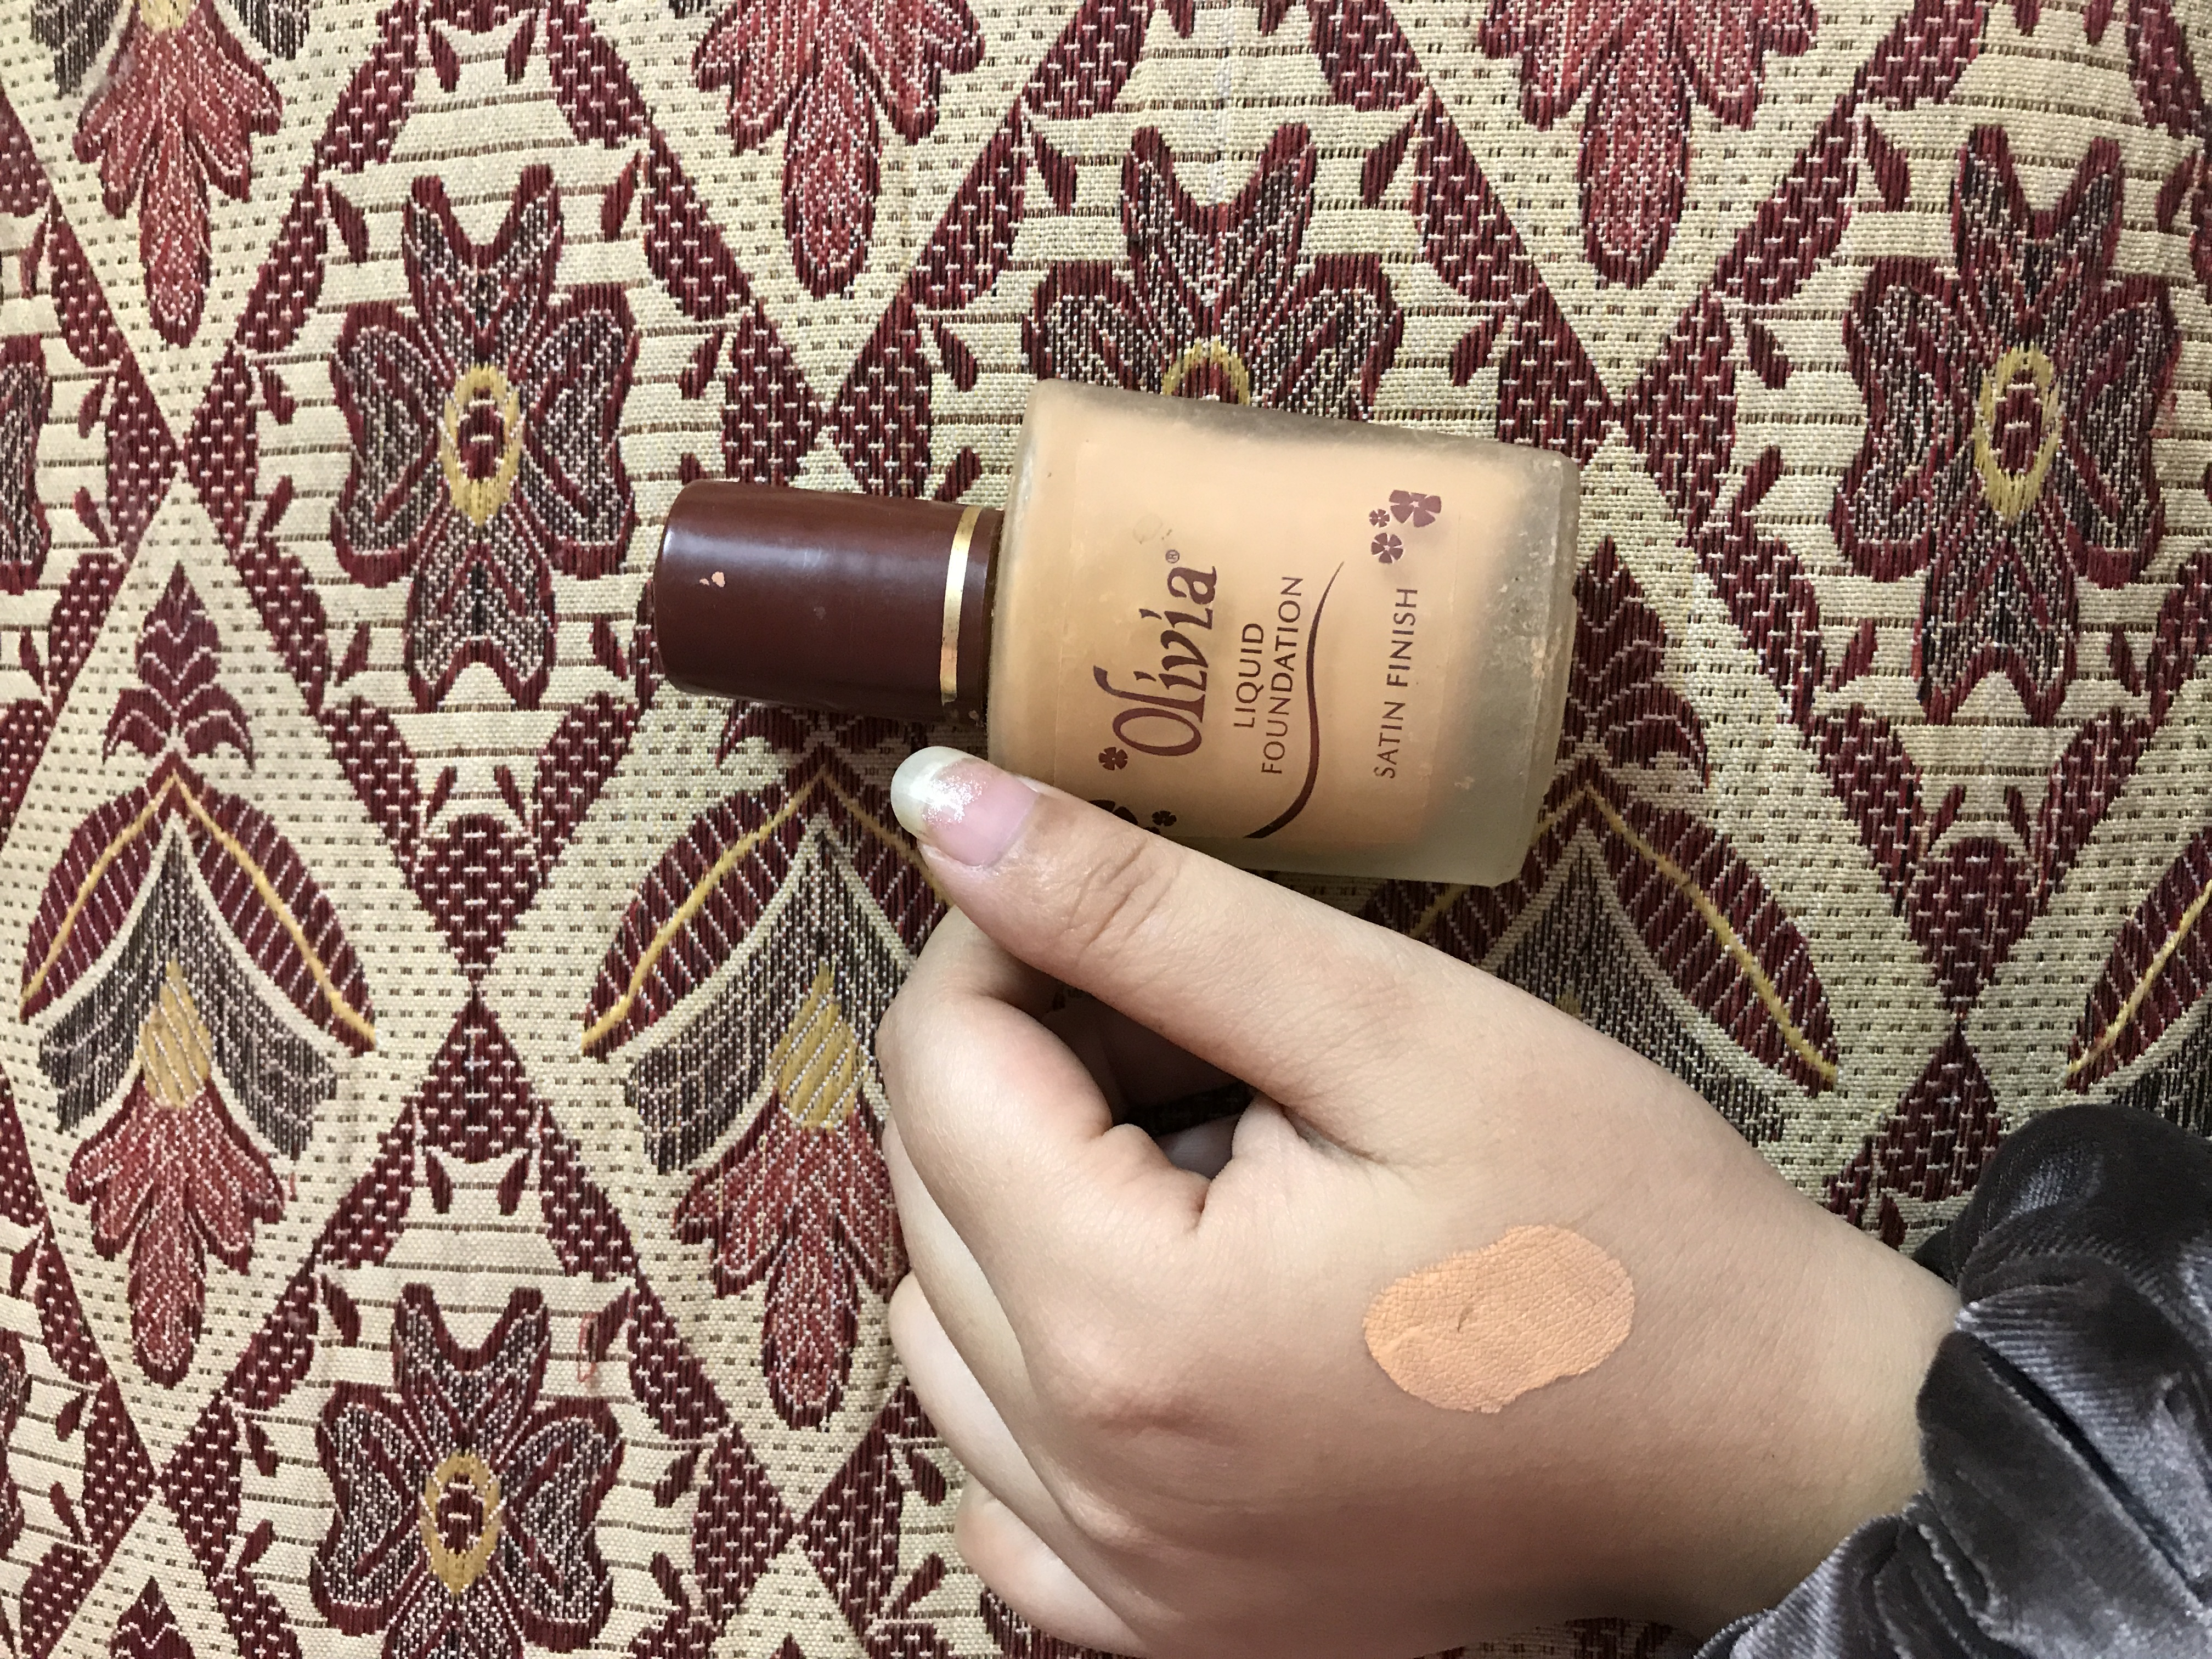 Olivia Liquid Foundation Satin Finish-A thumbs up-By she_oneand_only